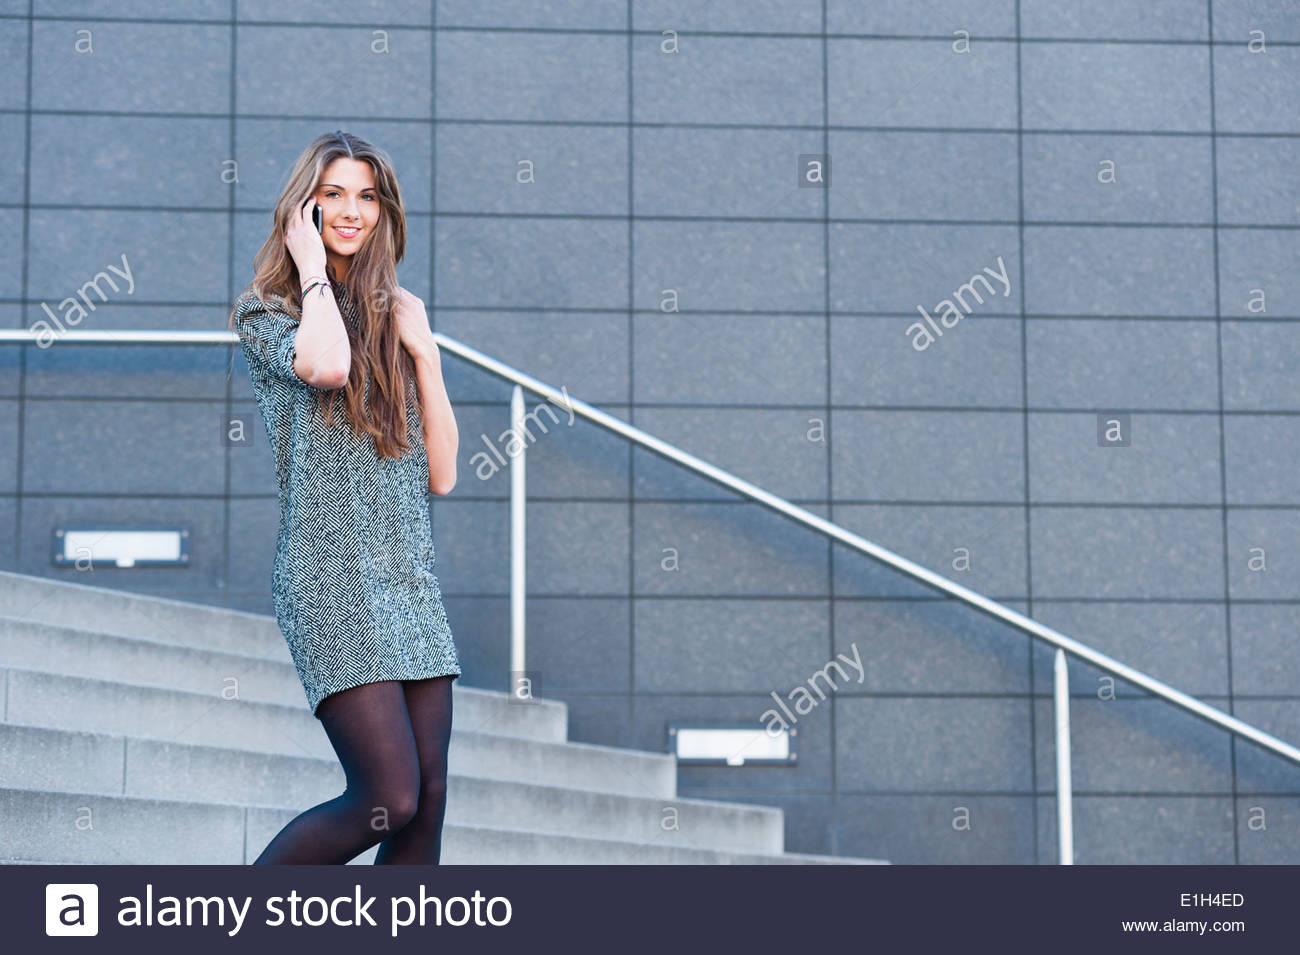 Young woman walking down steps, on phonecall - Stock Image